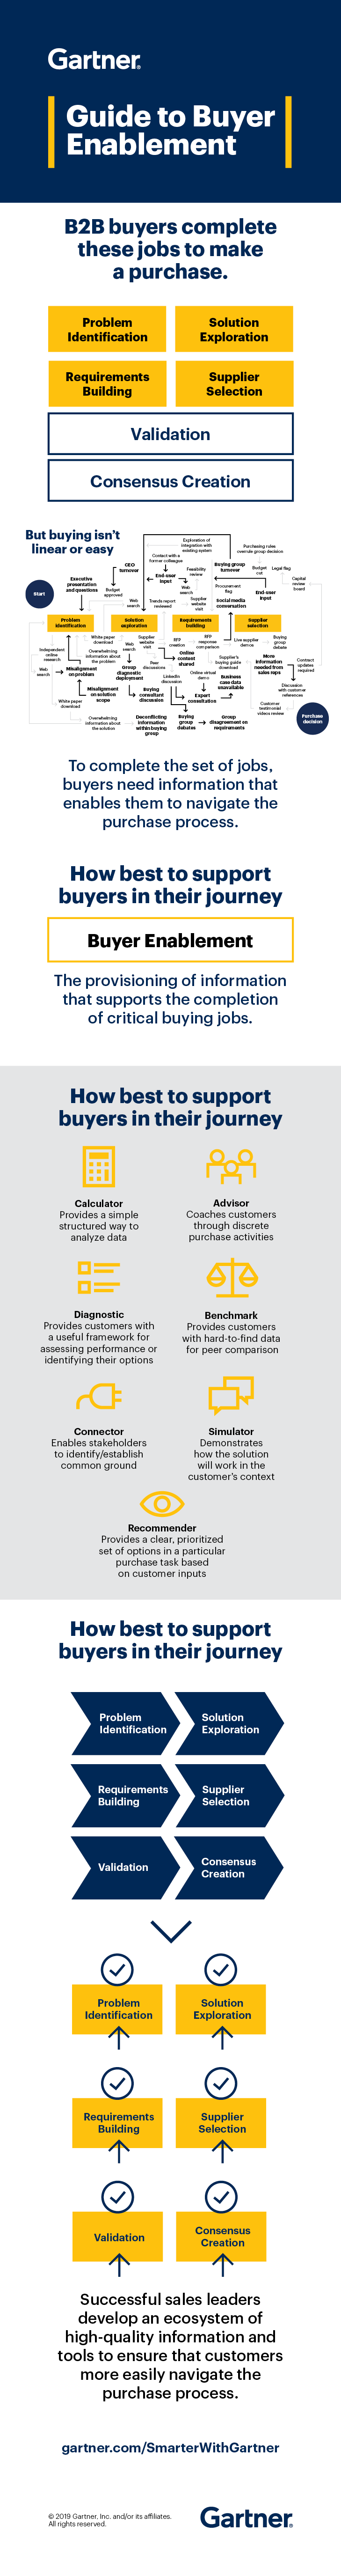 A Guide to Buyer Enablement by Gartner